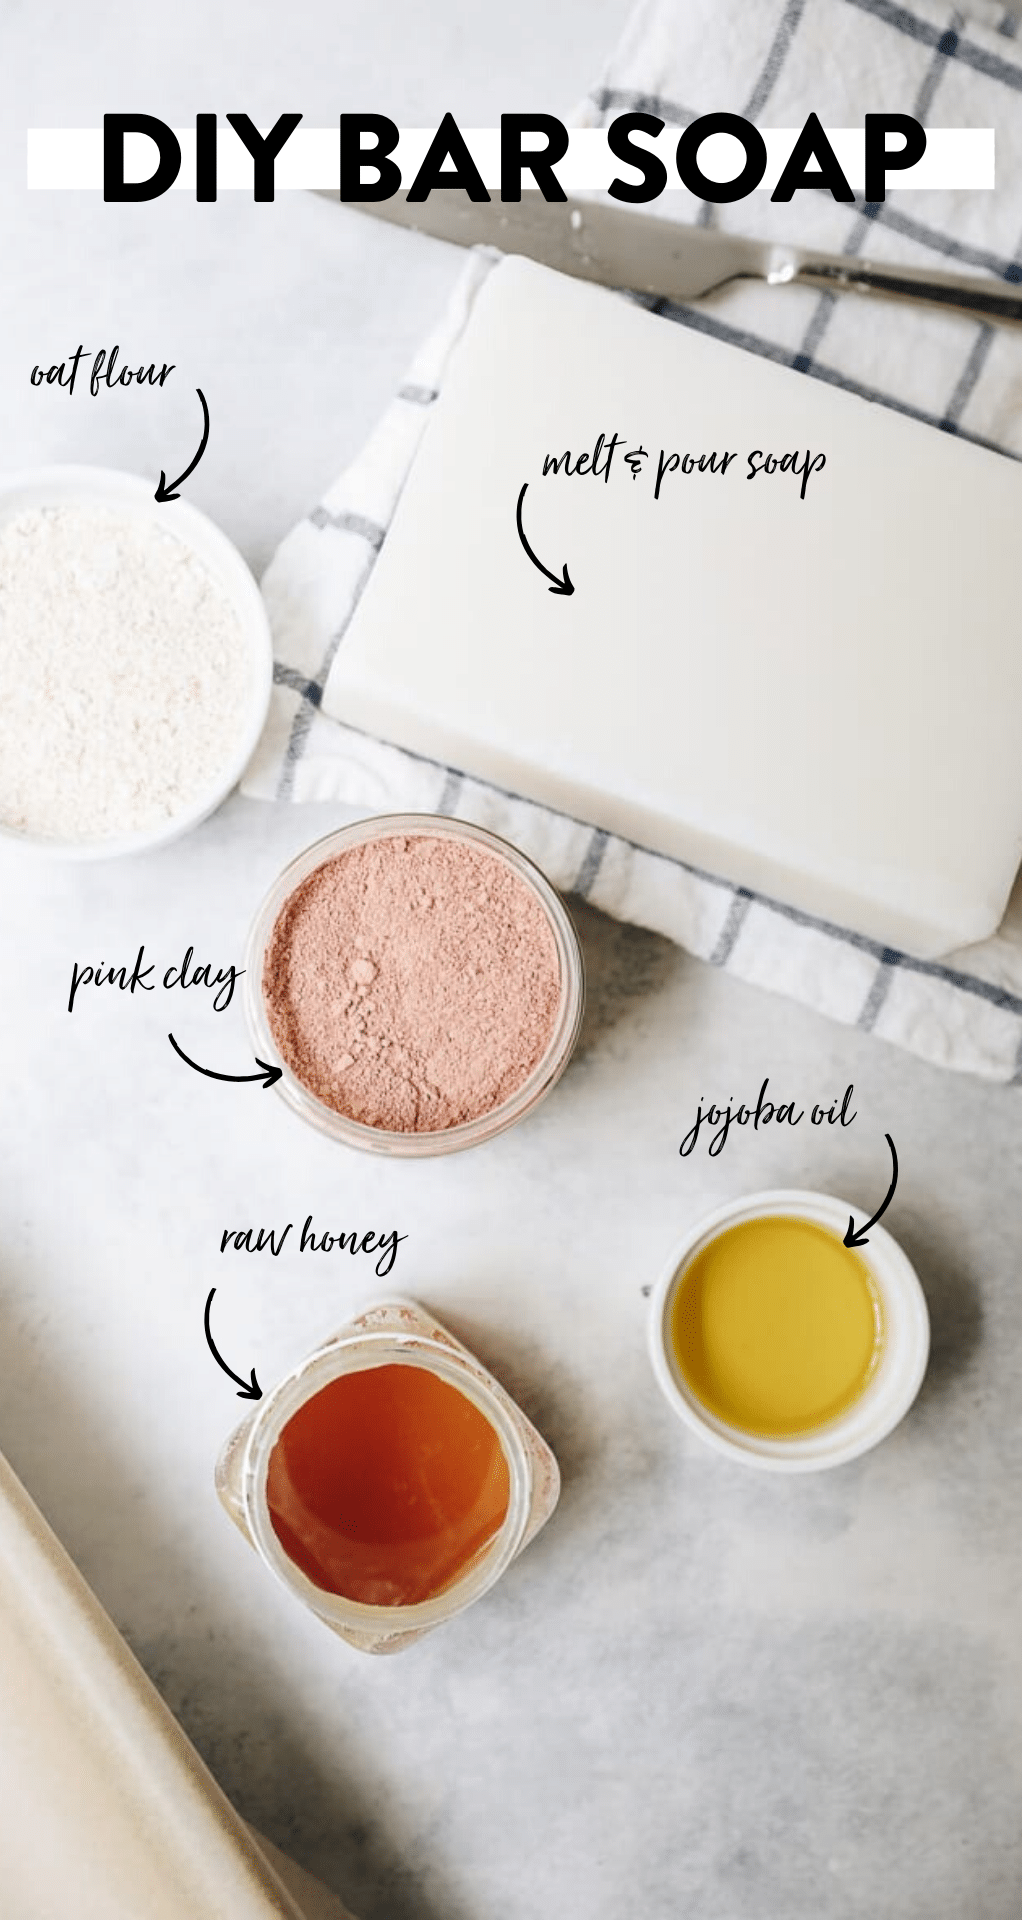 How To Make Homemade Bar Soap Sensitive Skin The Healthy Maven